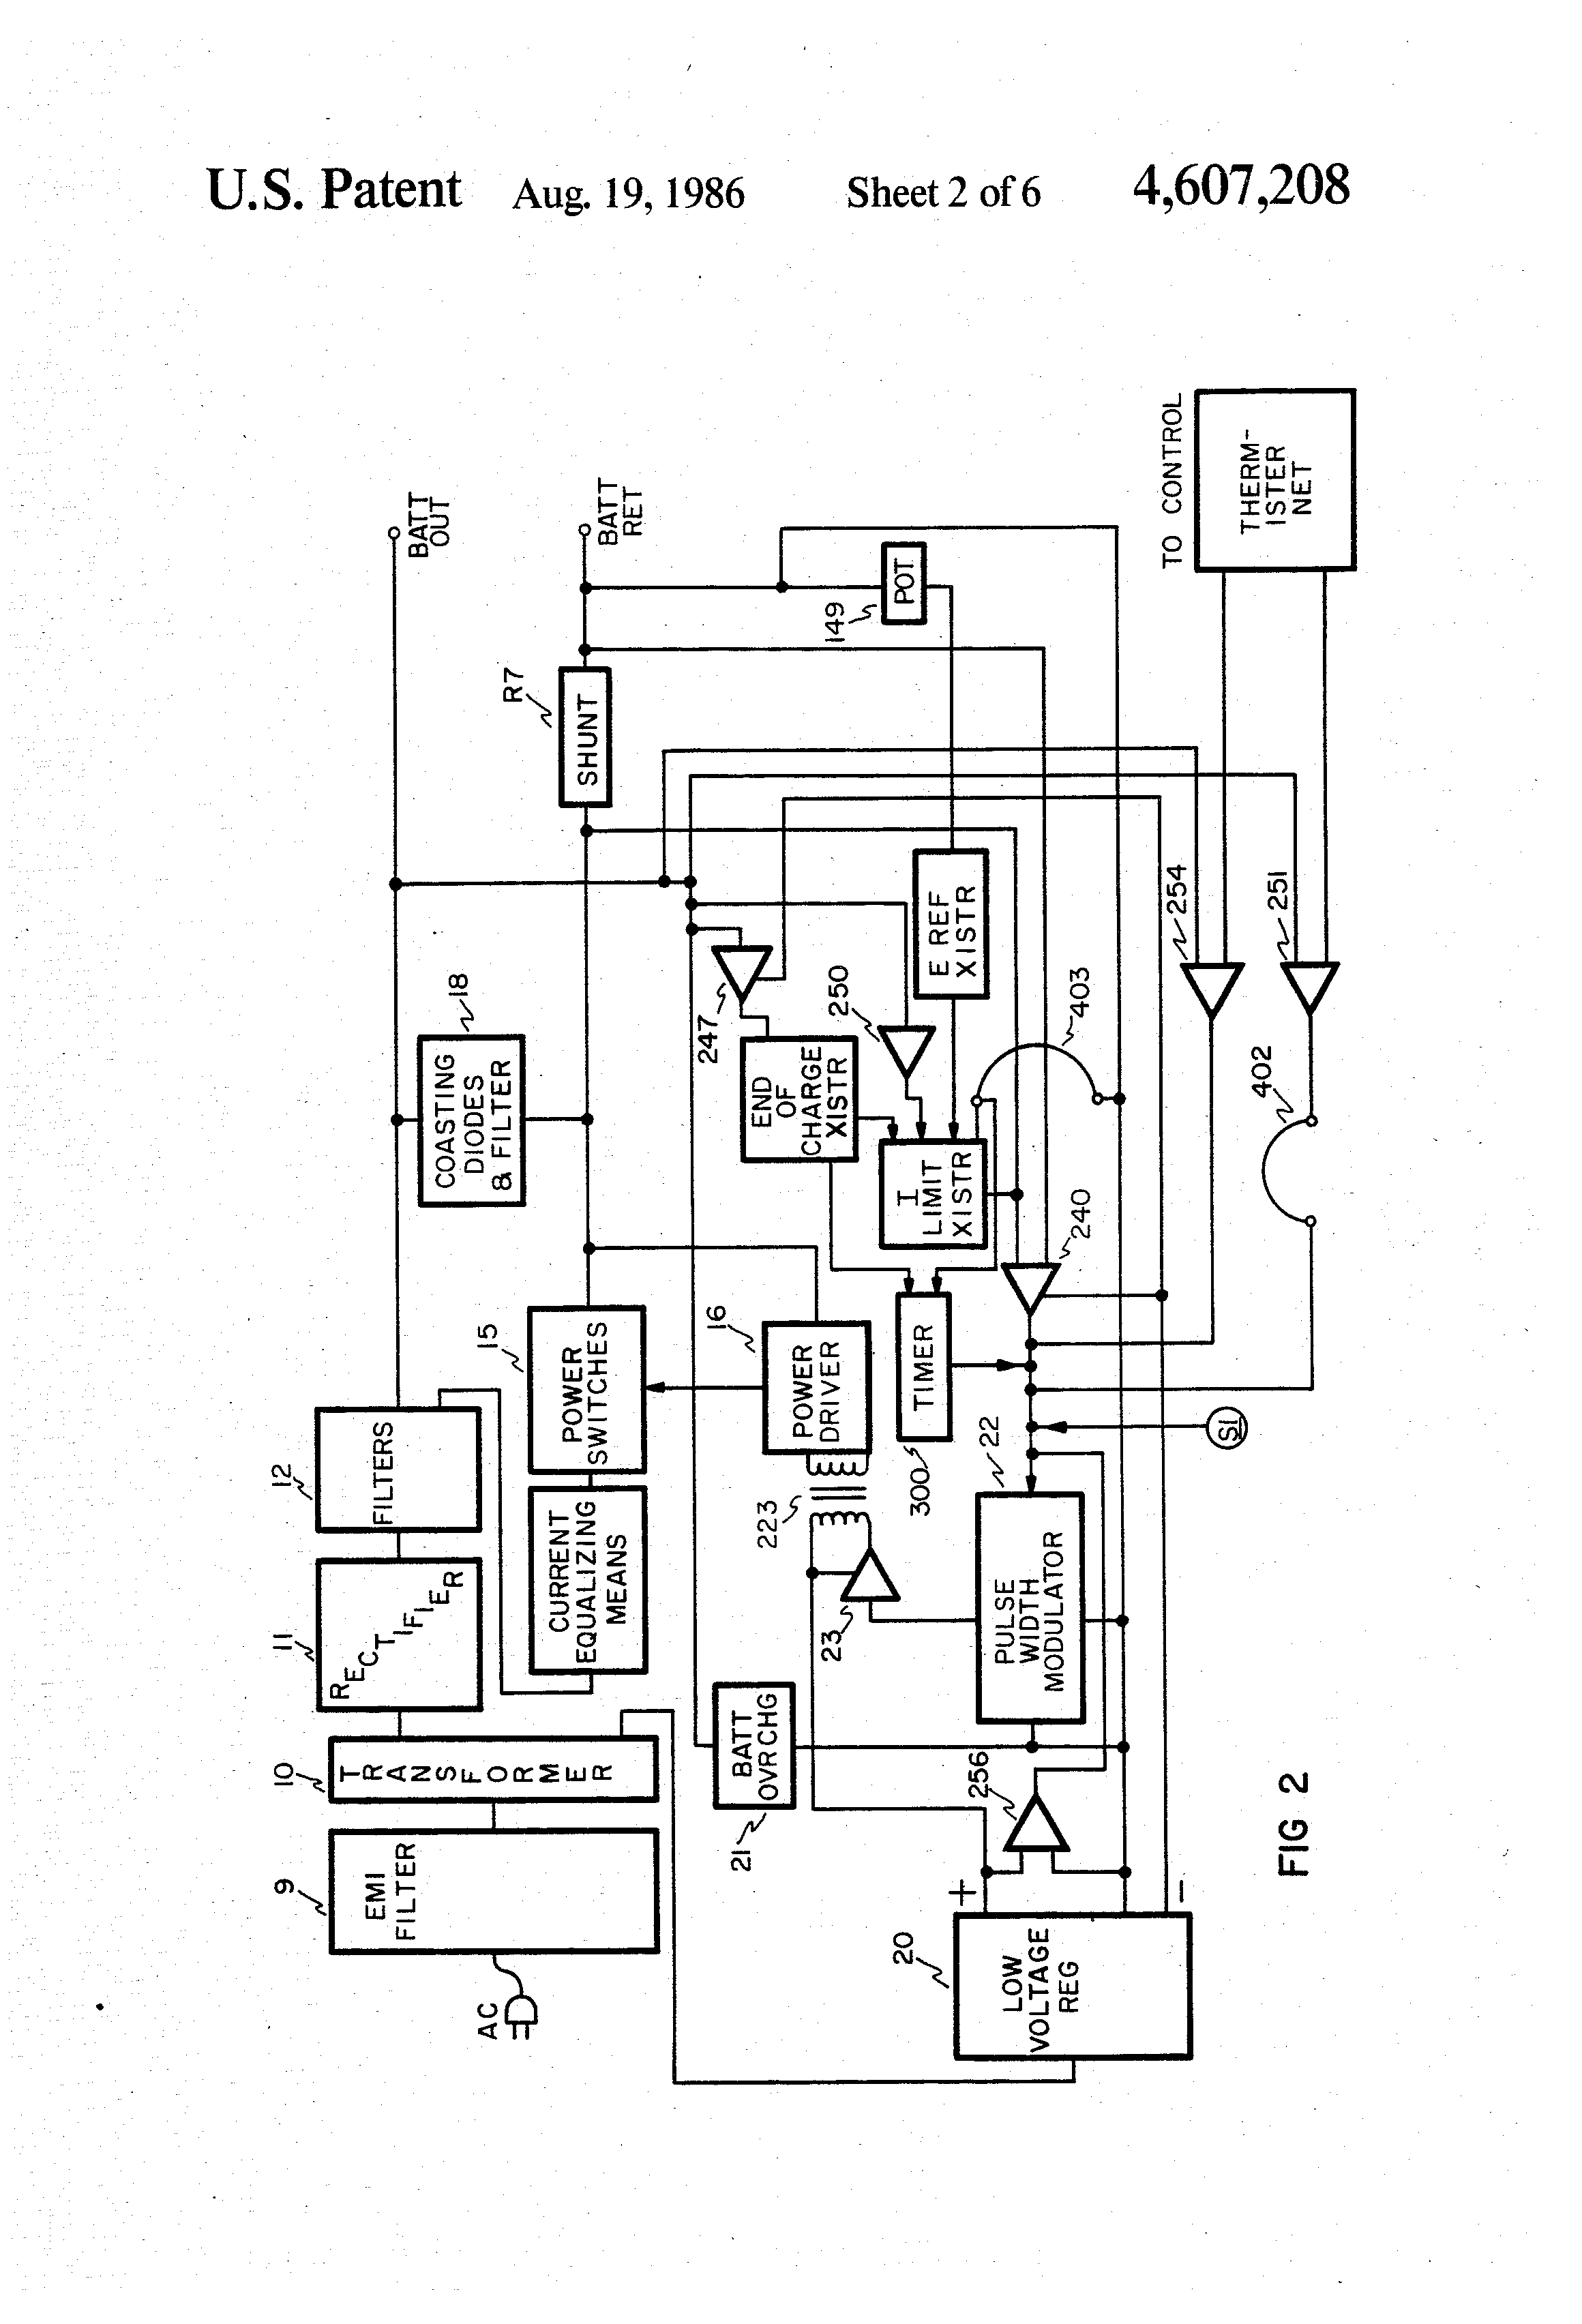 onboard battery charger wiring diagram    wiring       diagram    for    onboard       battery    chargers    wiring        wiring       diagram    for    onboard       battery    chargers    wiring